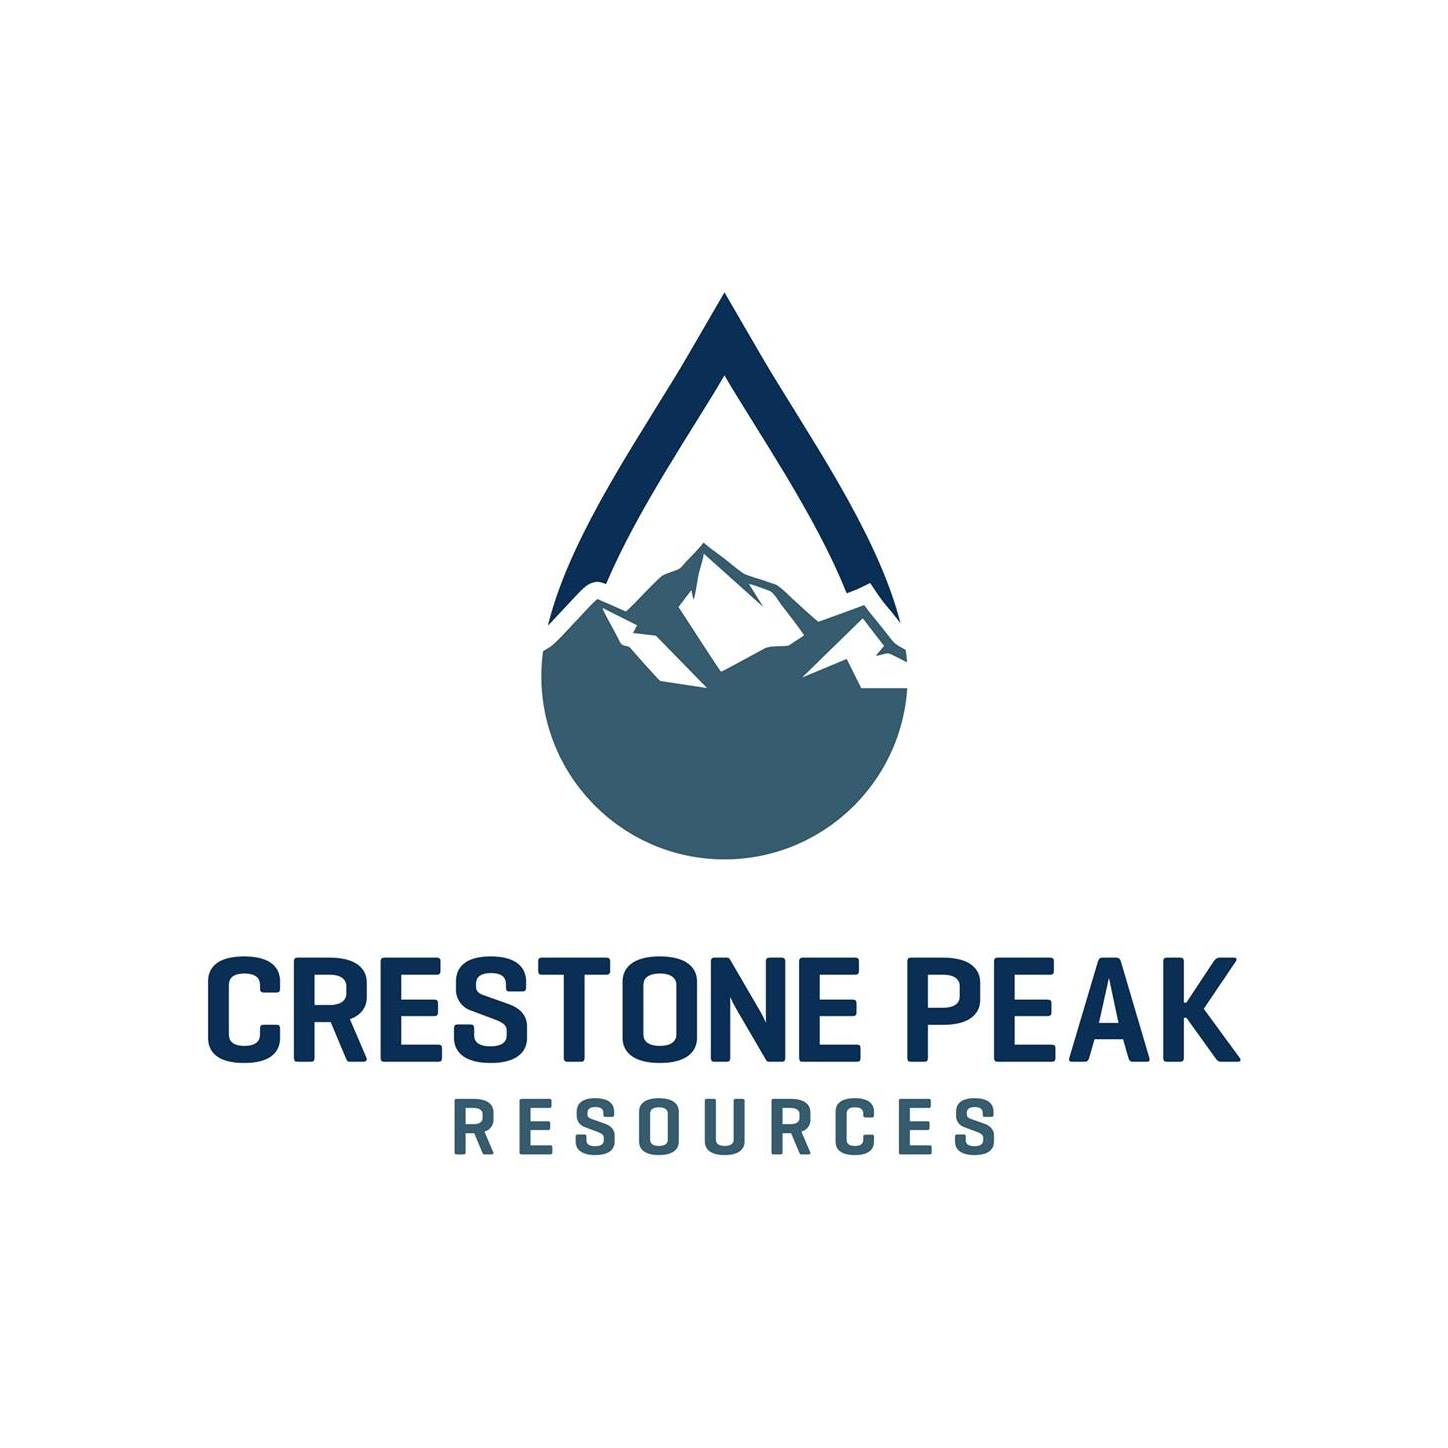 Crestone Peak Resources